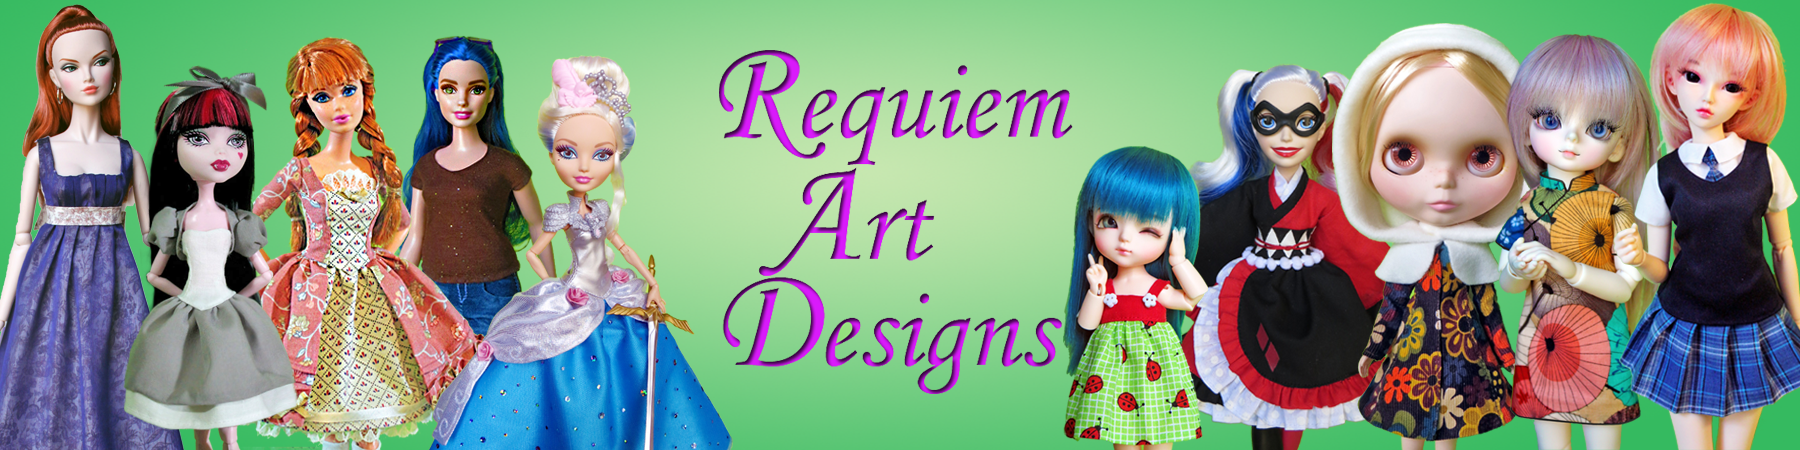 Requiem Art Designs